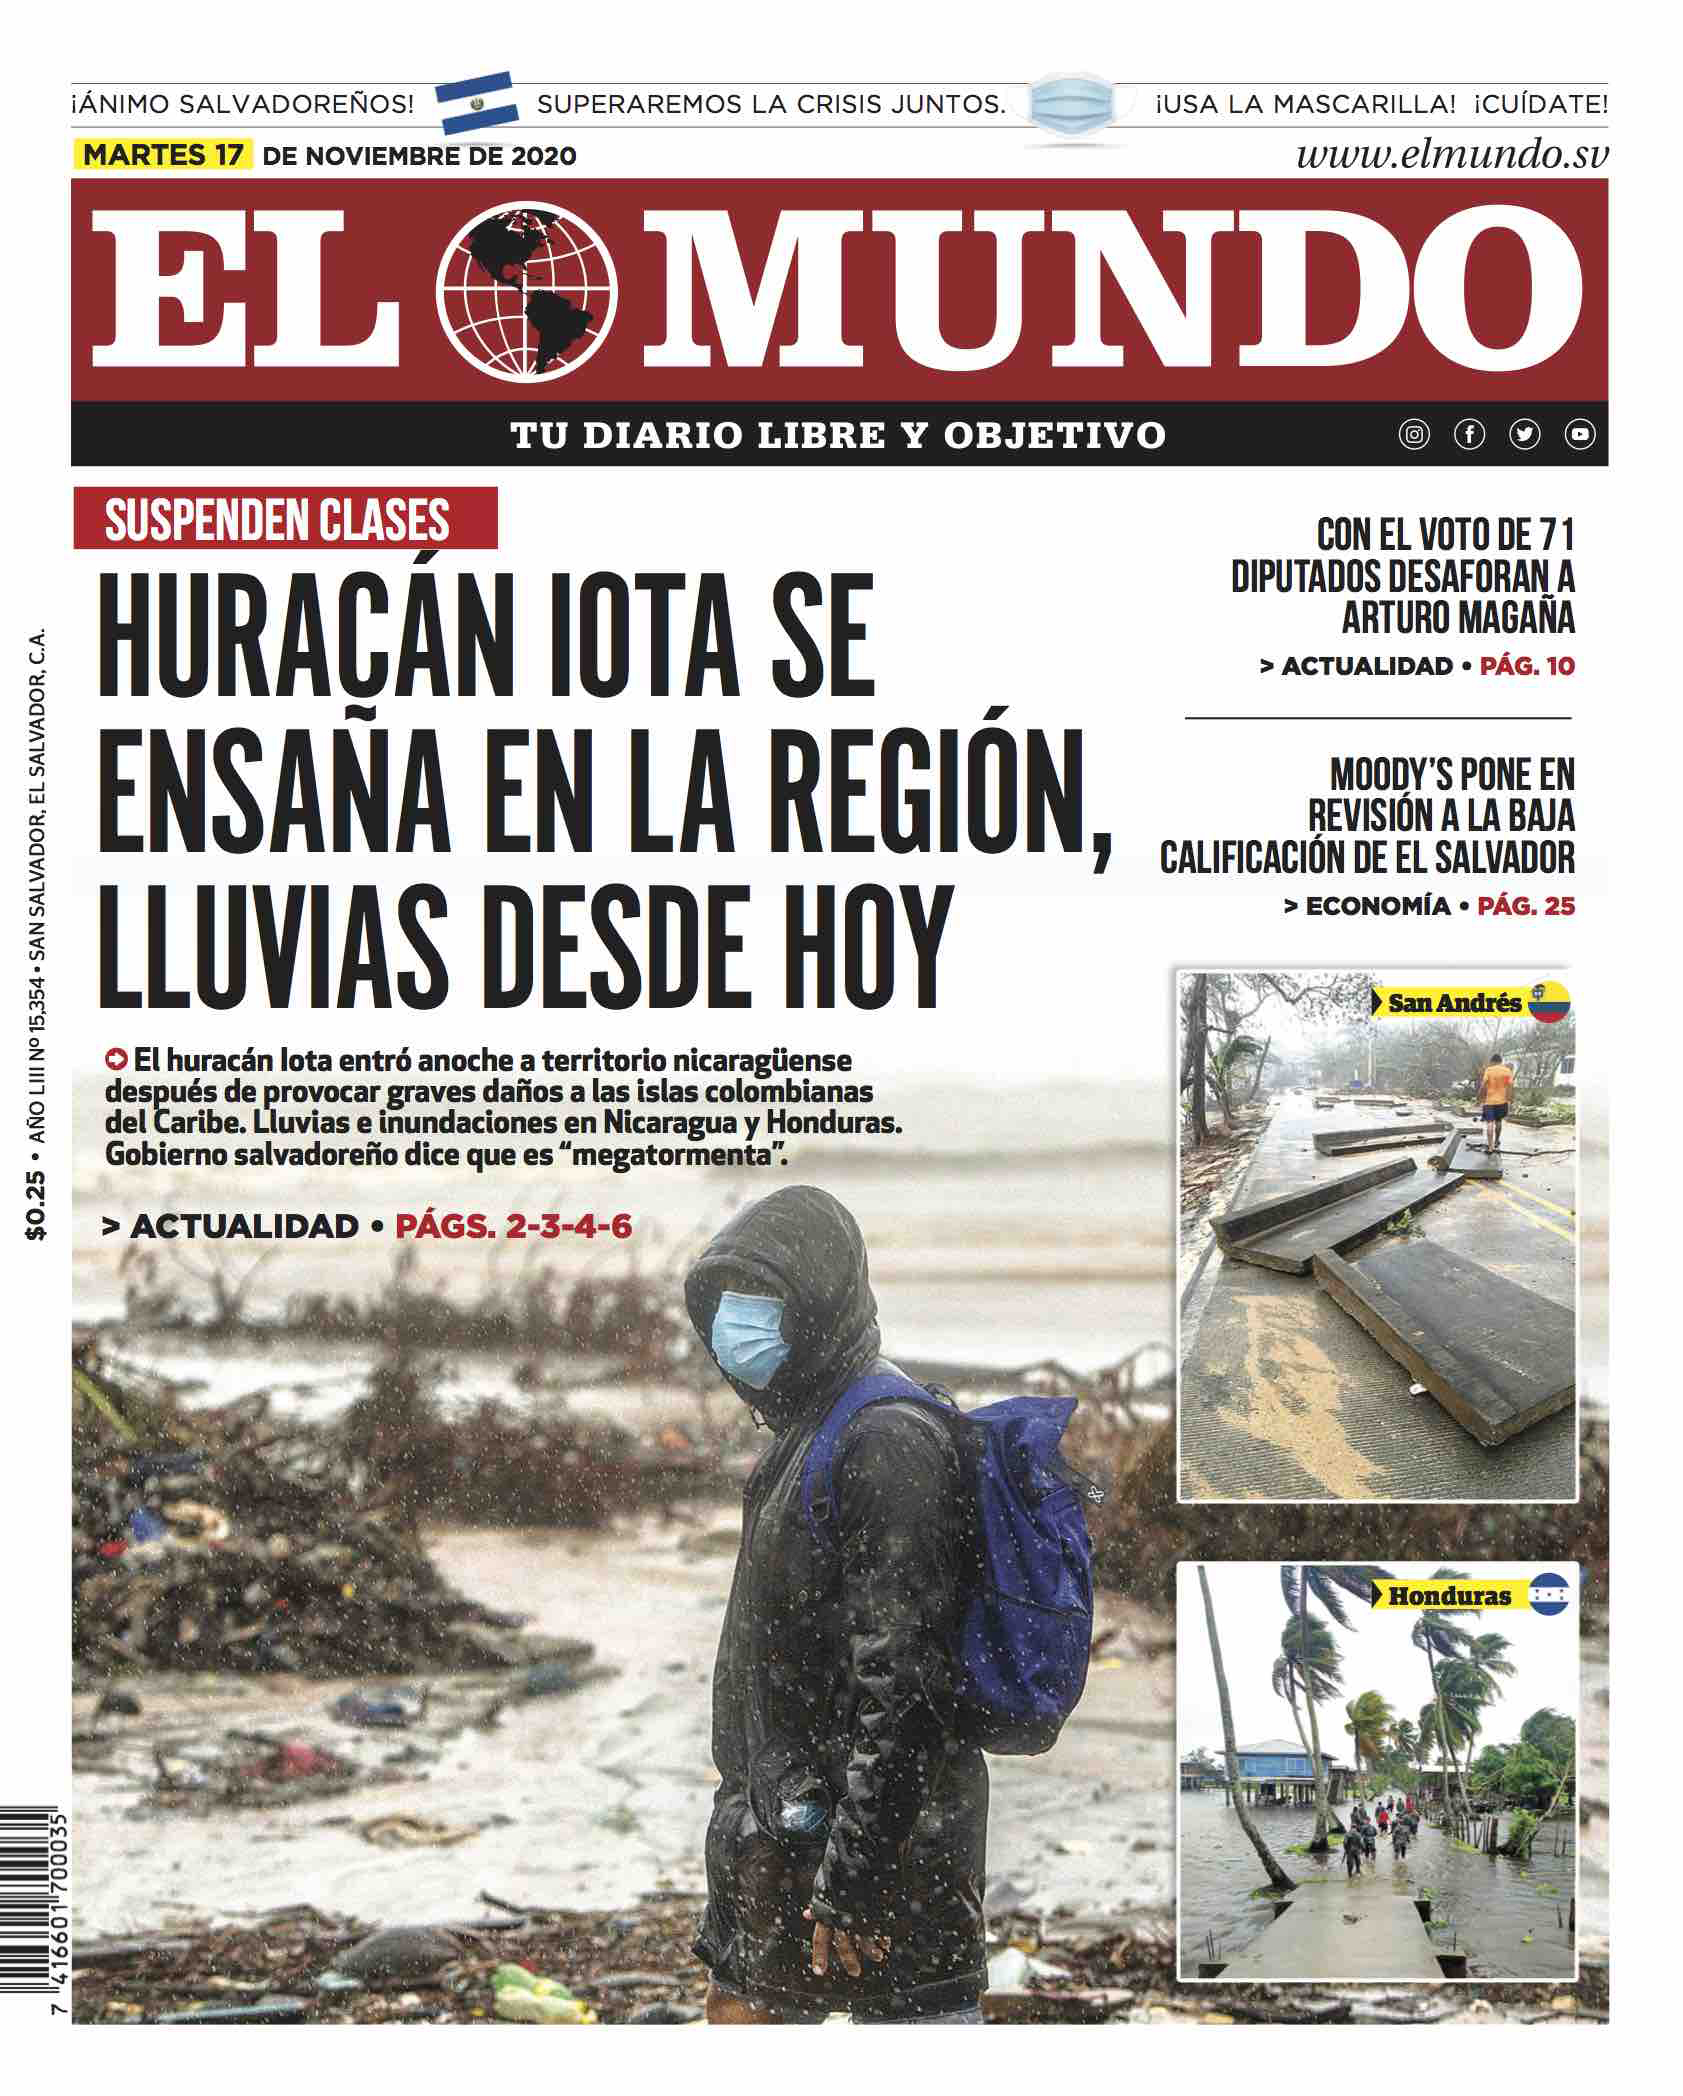 El Mundo Digital 17/11/20